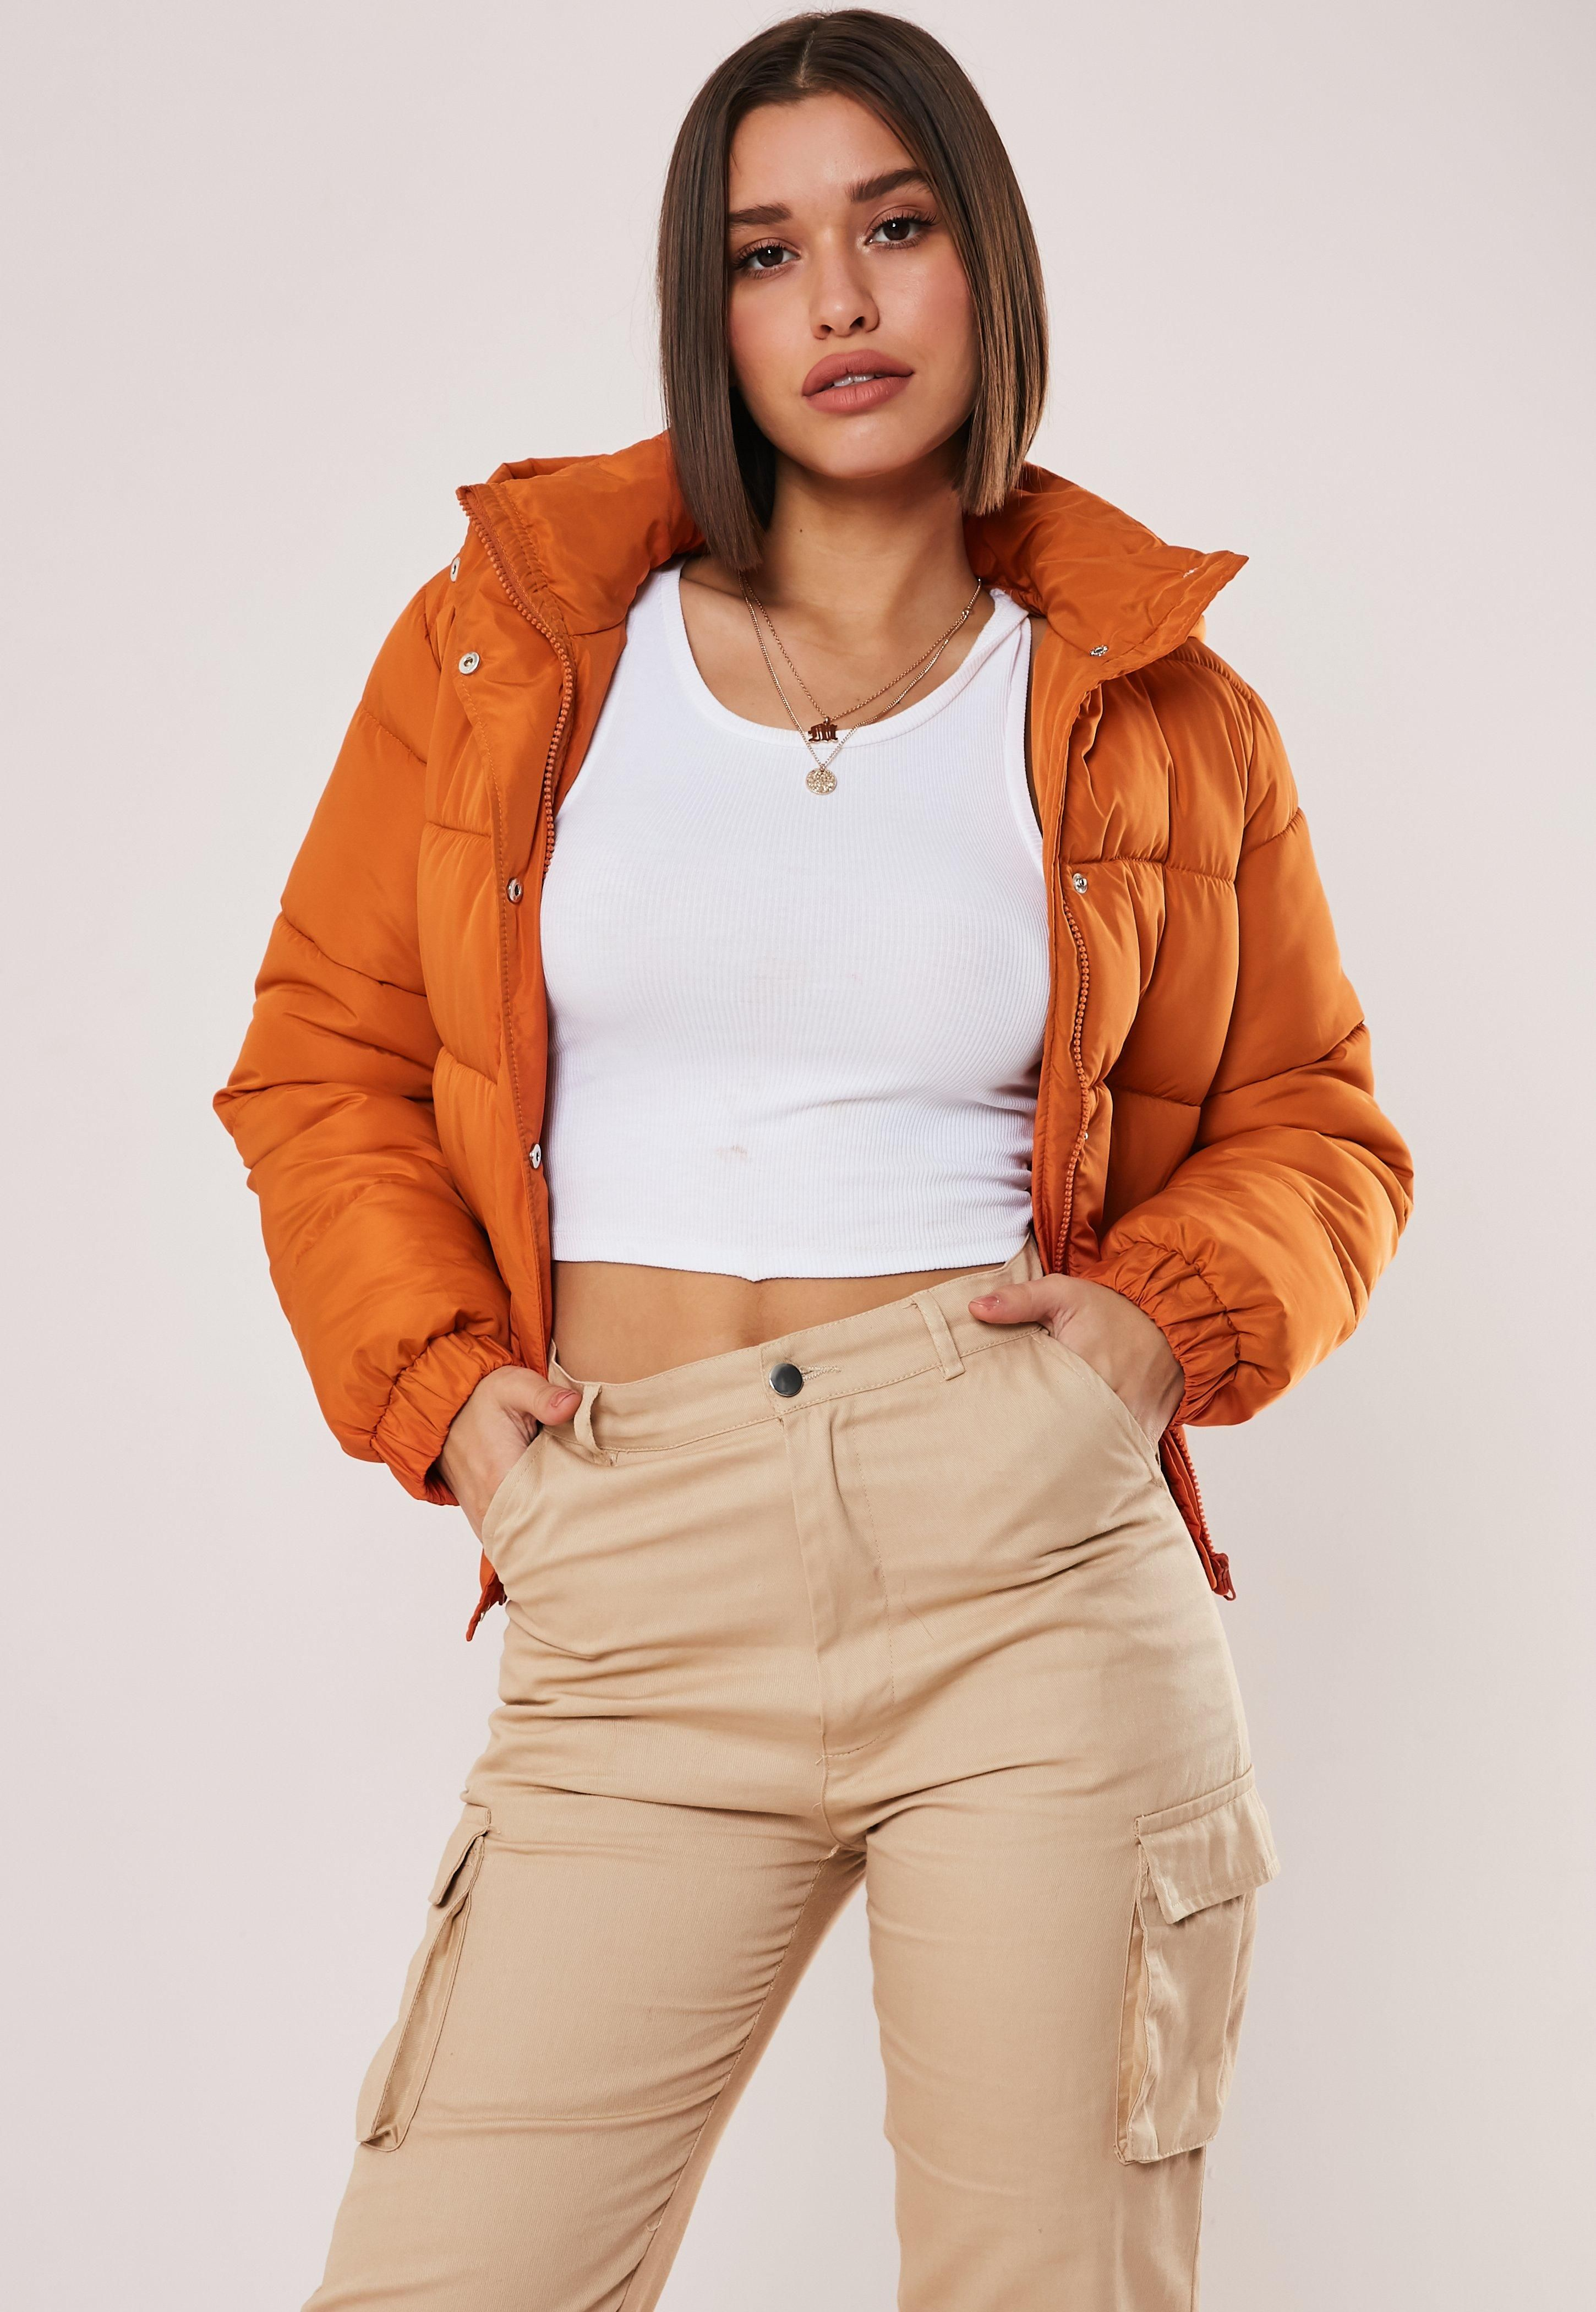 Orange Hooded Puffer Jacket Sponsored Hooded Spon Orange Jacket Coats Jackets Women Puffer Jacket Outfit Puffer Jackets [ 4200 x 2900 Pixel ]